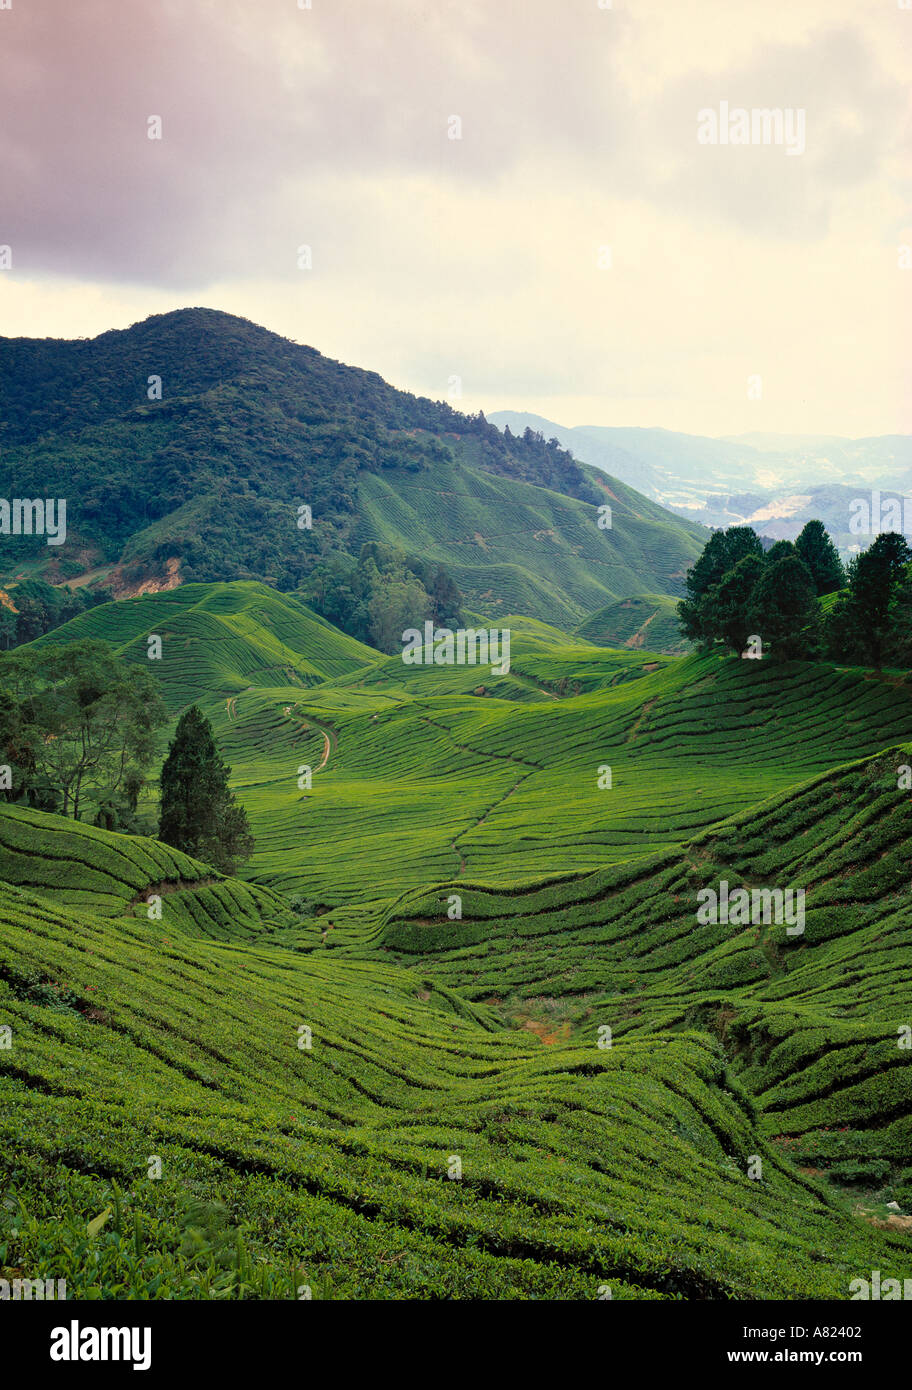 Tea Estate, Cameron Highlands, Malaysia - Stock Image